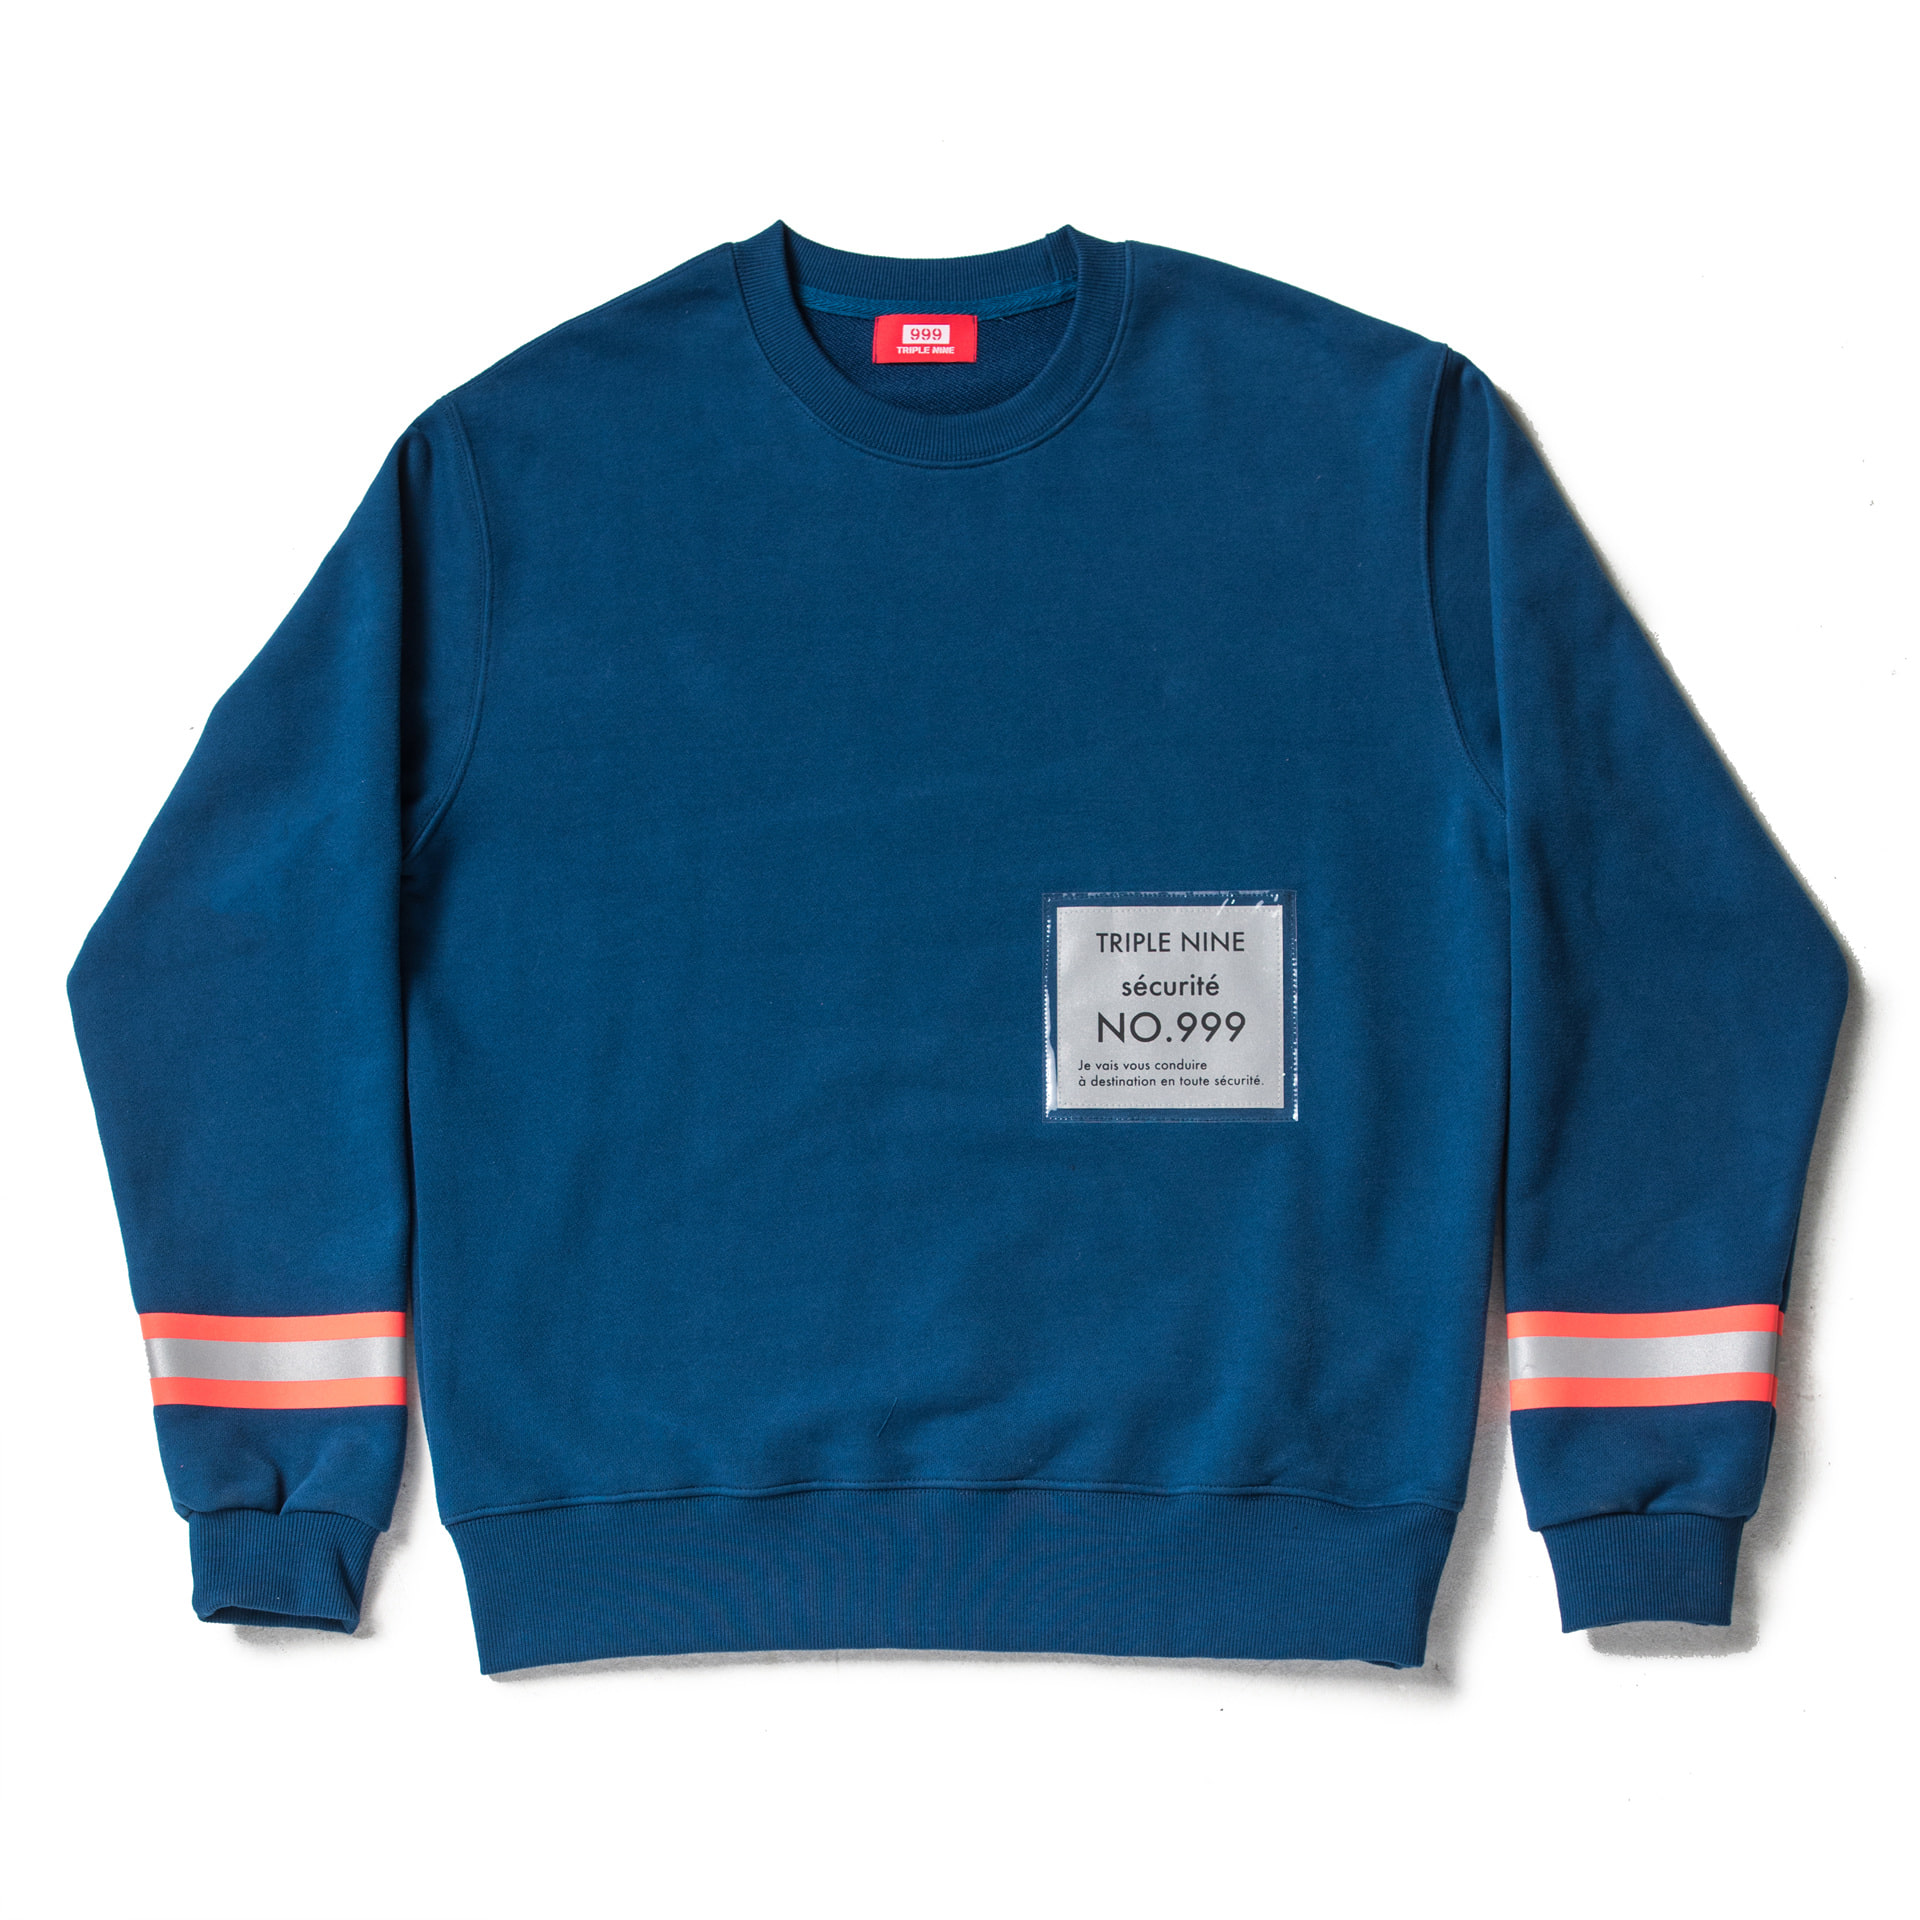 Sécurité Sweat Shirt (Blue)